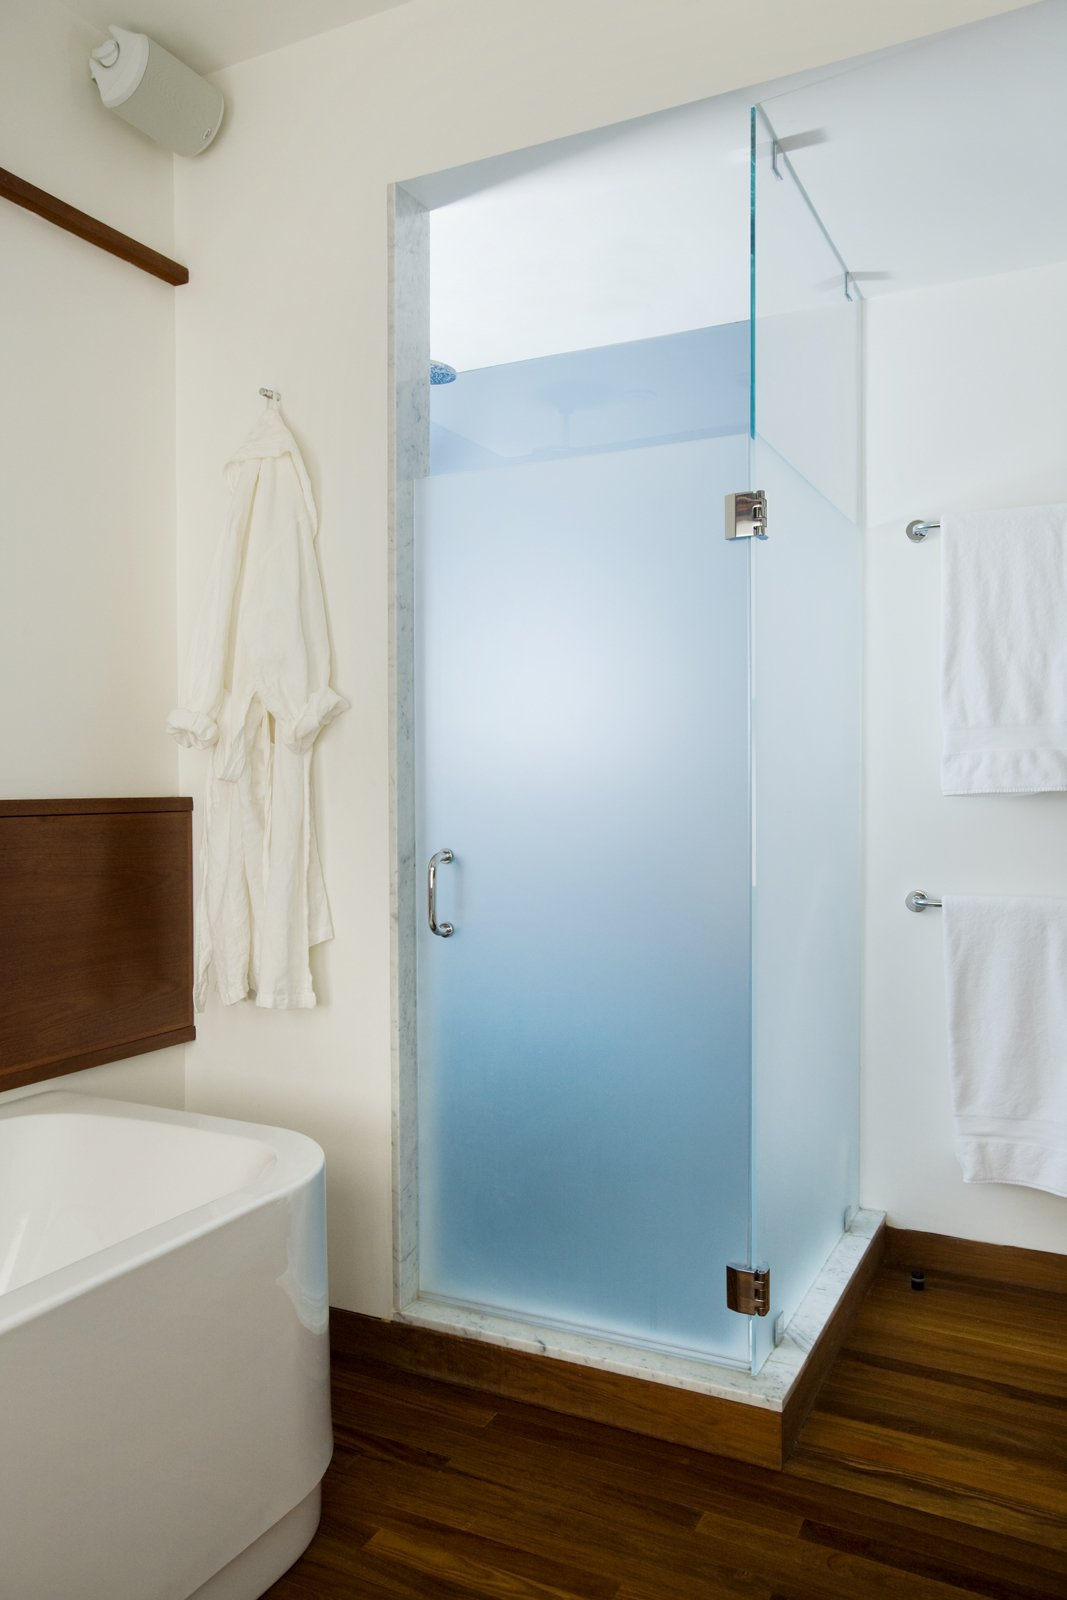 The shower is one corner of the renovated bathroom and adds a slash of color—a blue to match the color of the Aegean Sea as the homeowner remembered it after a trip to the Mediterranean.Butz and Klug chose towels bars and accessories from   Dornbracht to finish the room's look.Photo by   Eric Roth  Photo 4 of 4 in Loo & Improved